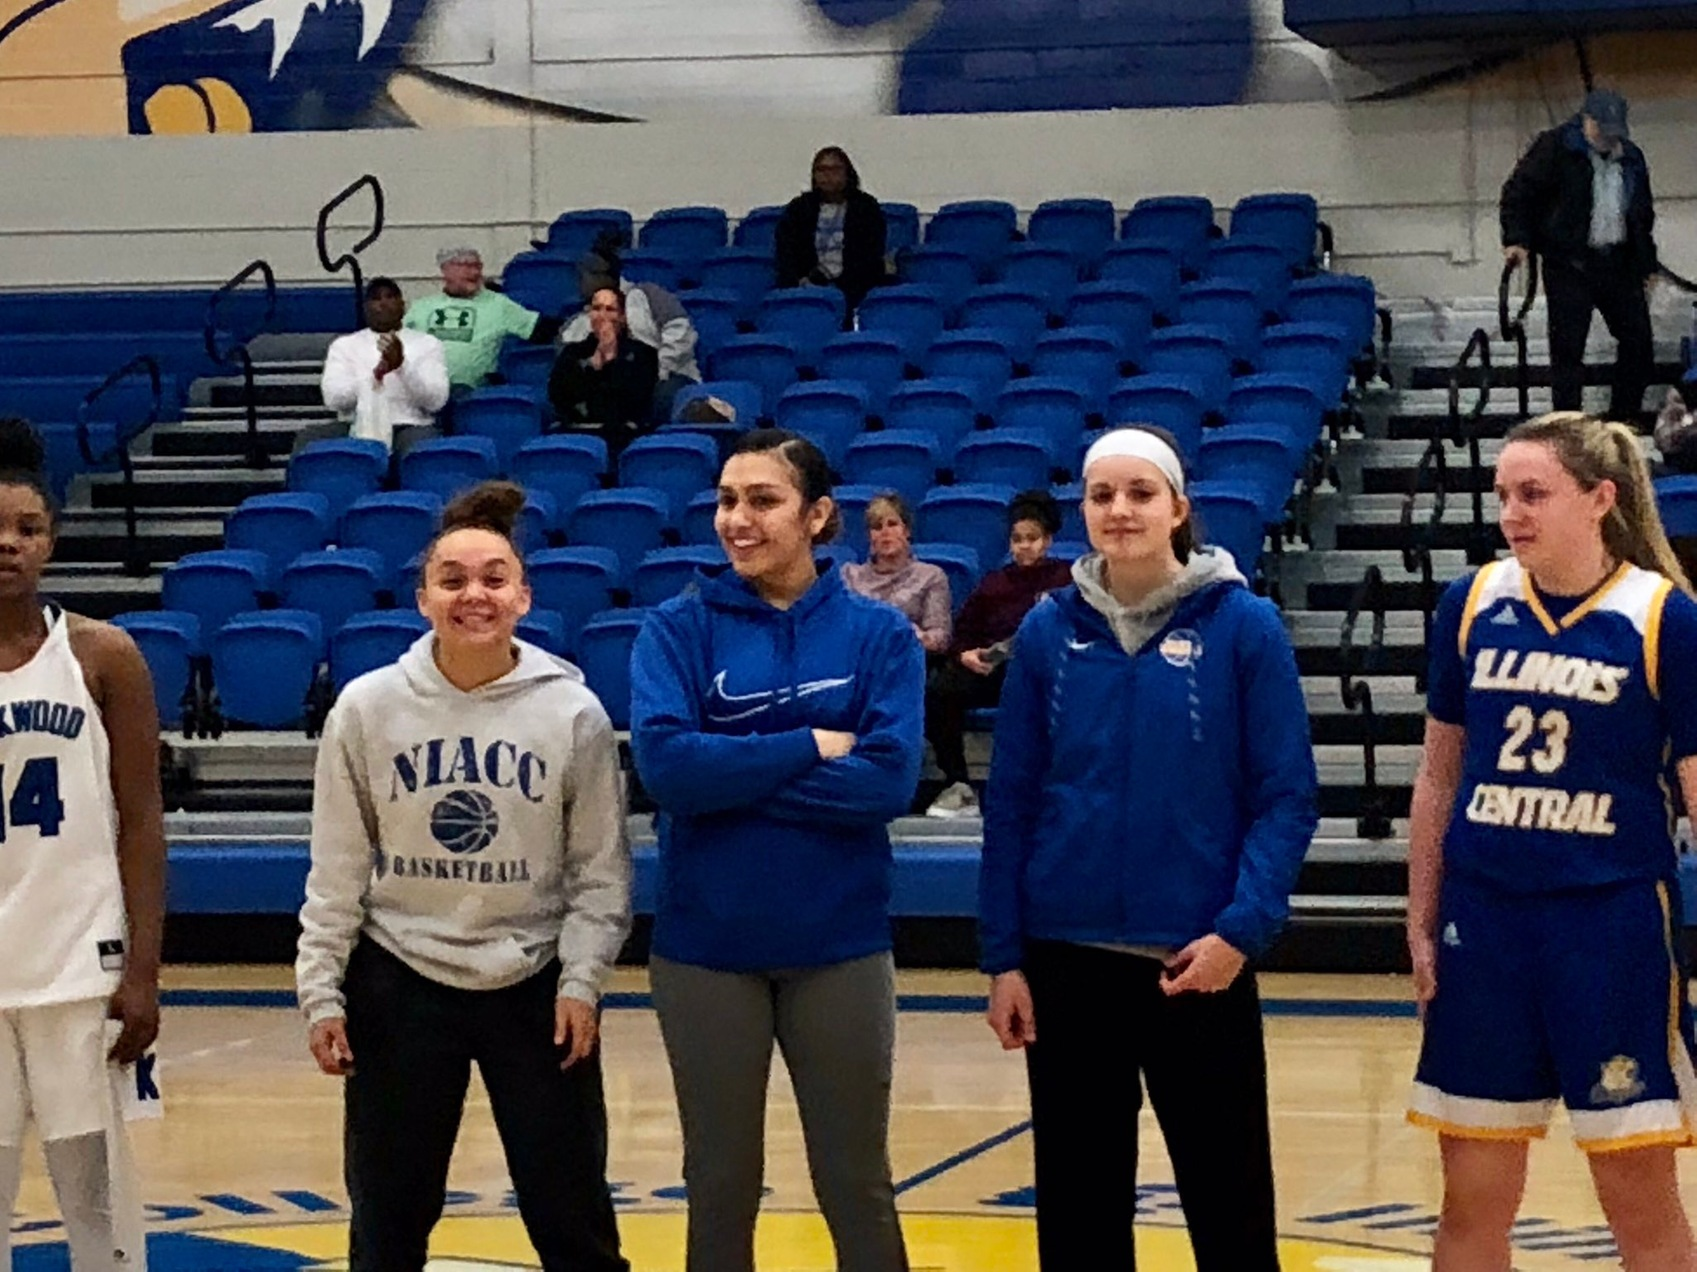 Kelcie Hale, Autam Mendez and Mandy Willems were all selected to the all-tournament team at the Cougar Holiday Tournament.